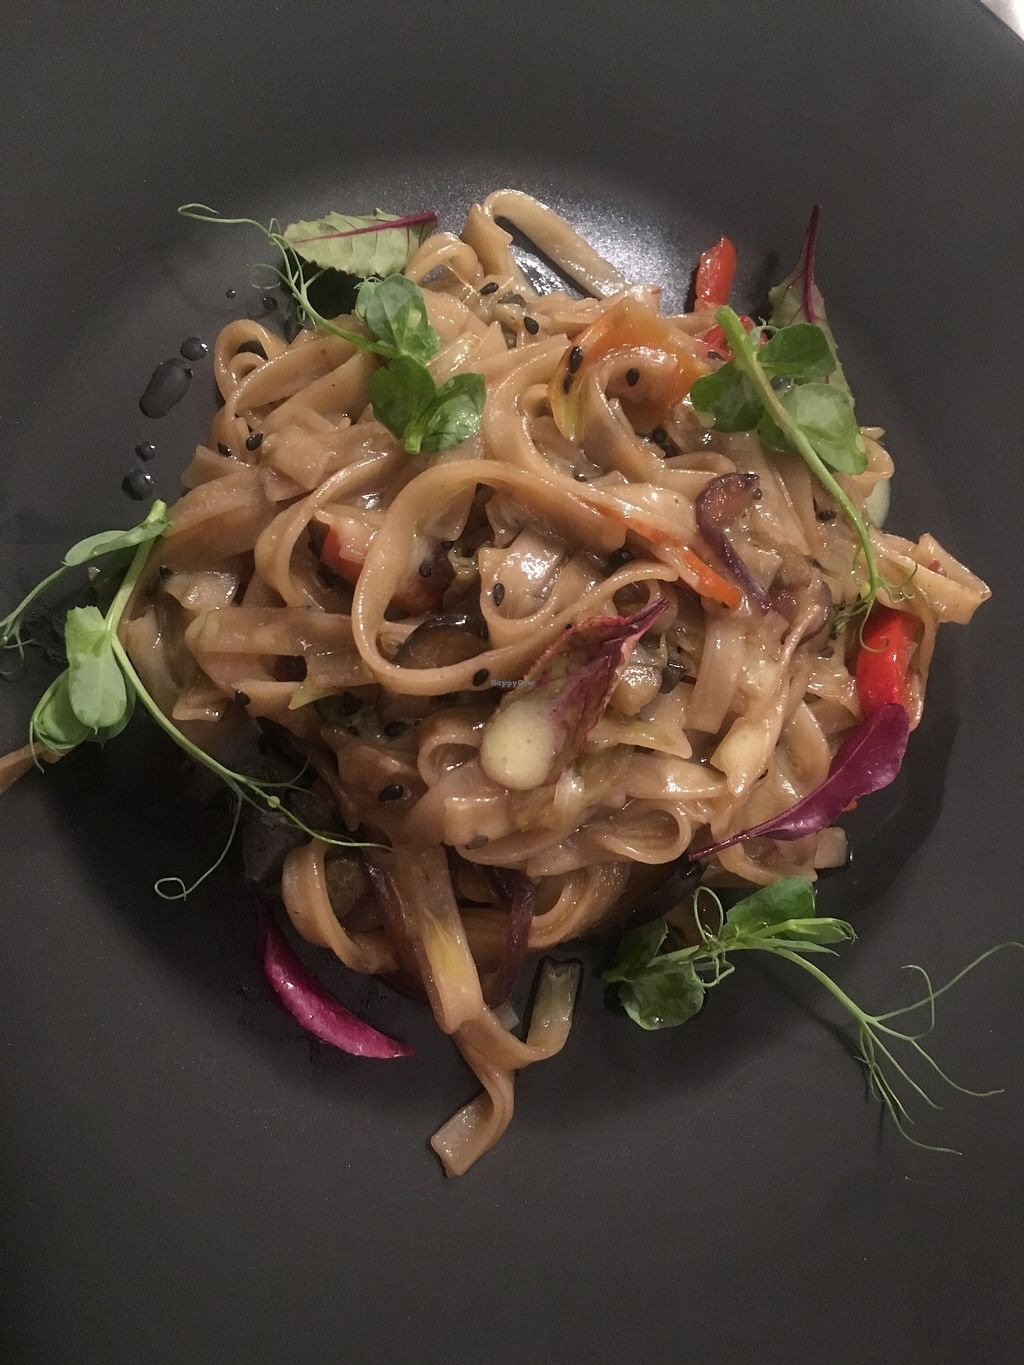 """Photo of Le Petit Bistrot  by <a href=""""/members/profile/Csctina"""">Csctina</a> <br/>Pad Thai <br/> December 29, 2017  - <a href='/contact/abuse/image/107952/340496'>Report</a>"""